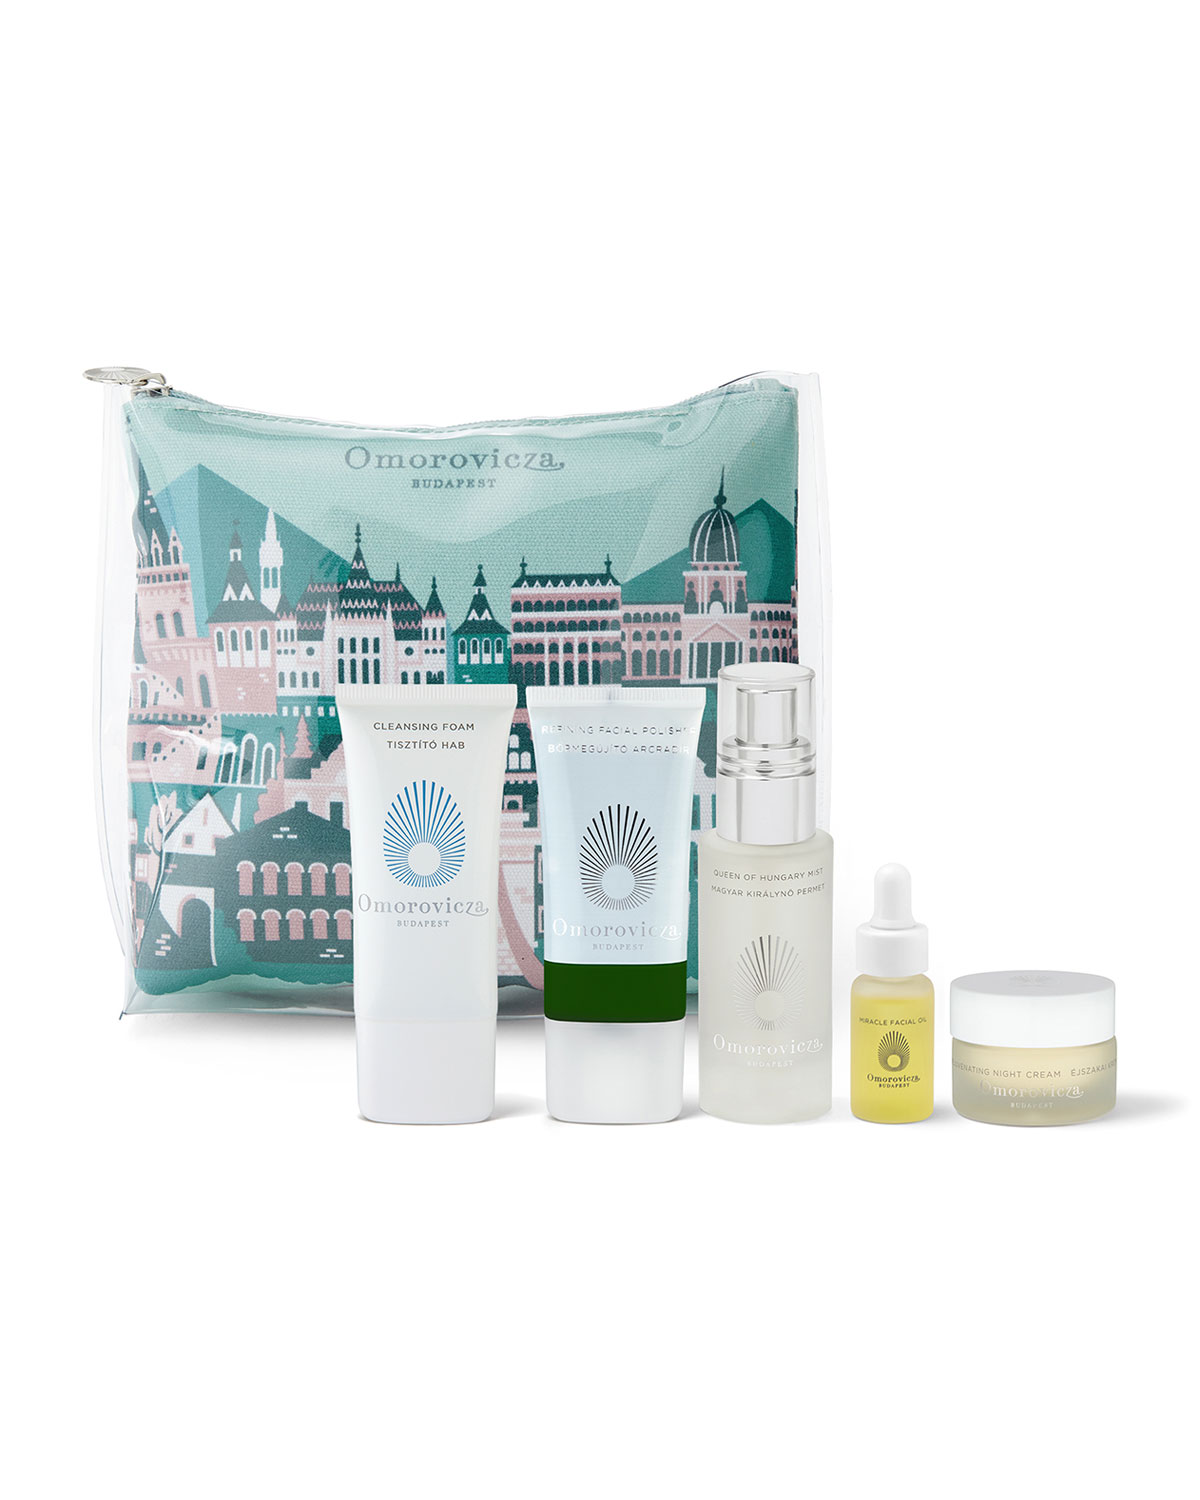 The Great Escape Limited Edition Kit ($180 Value)